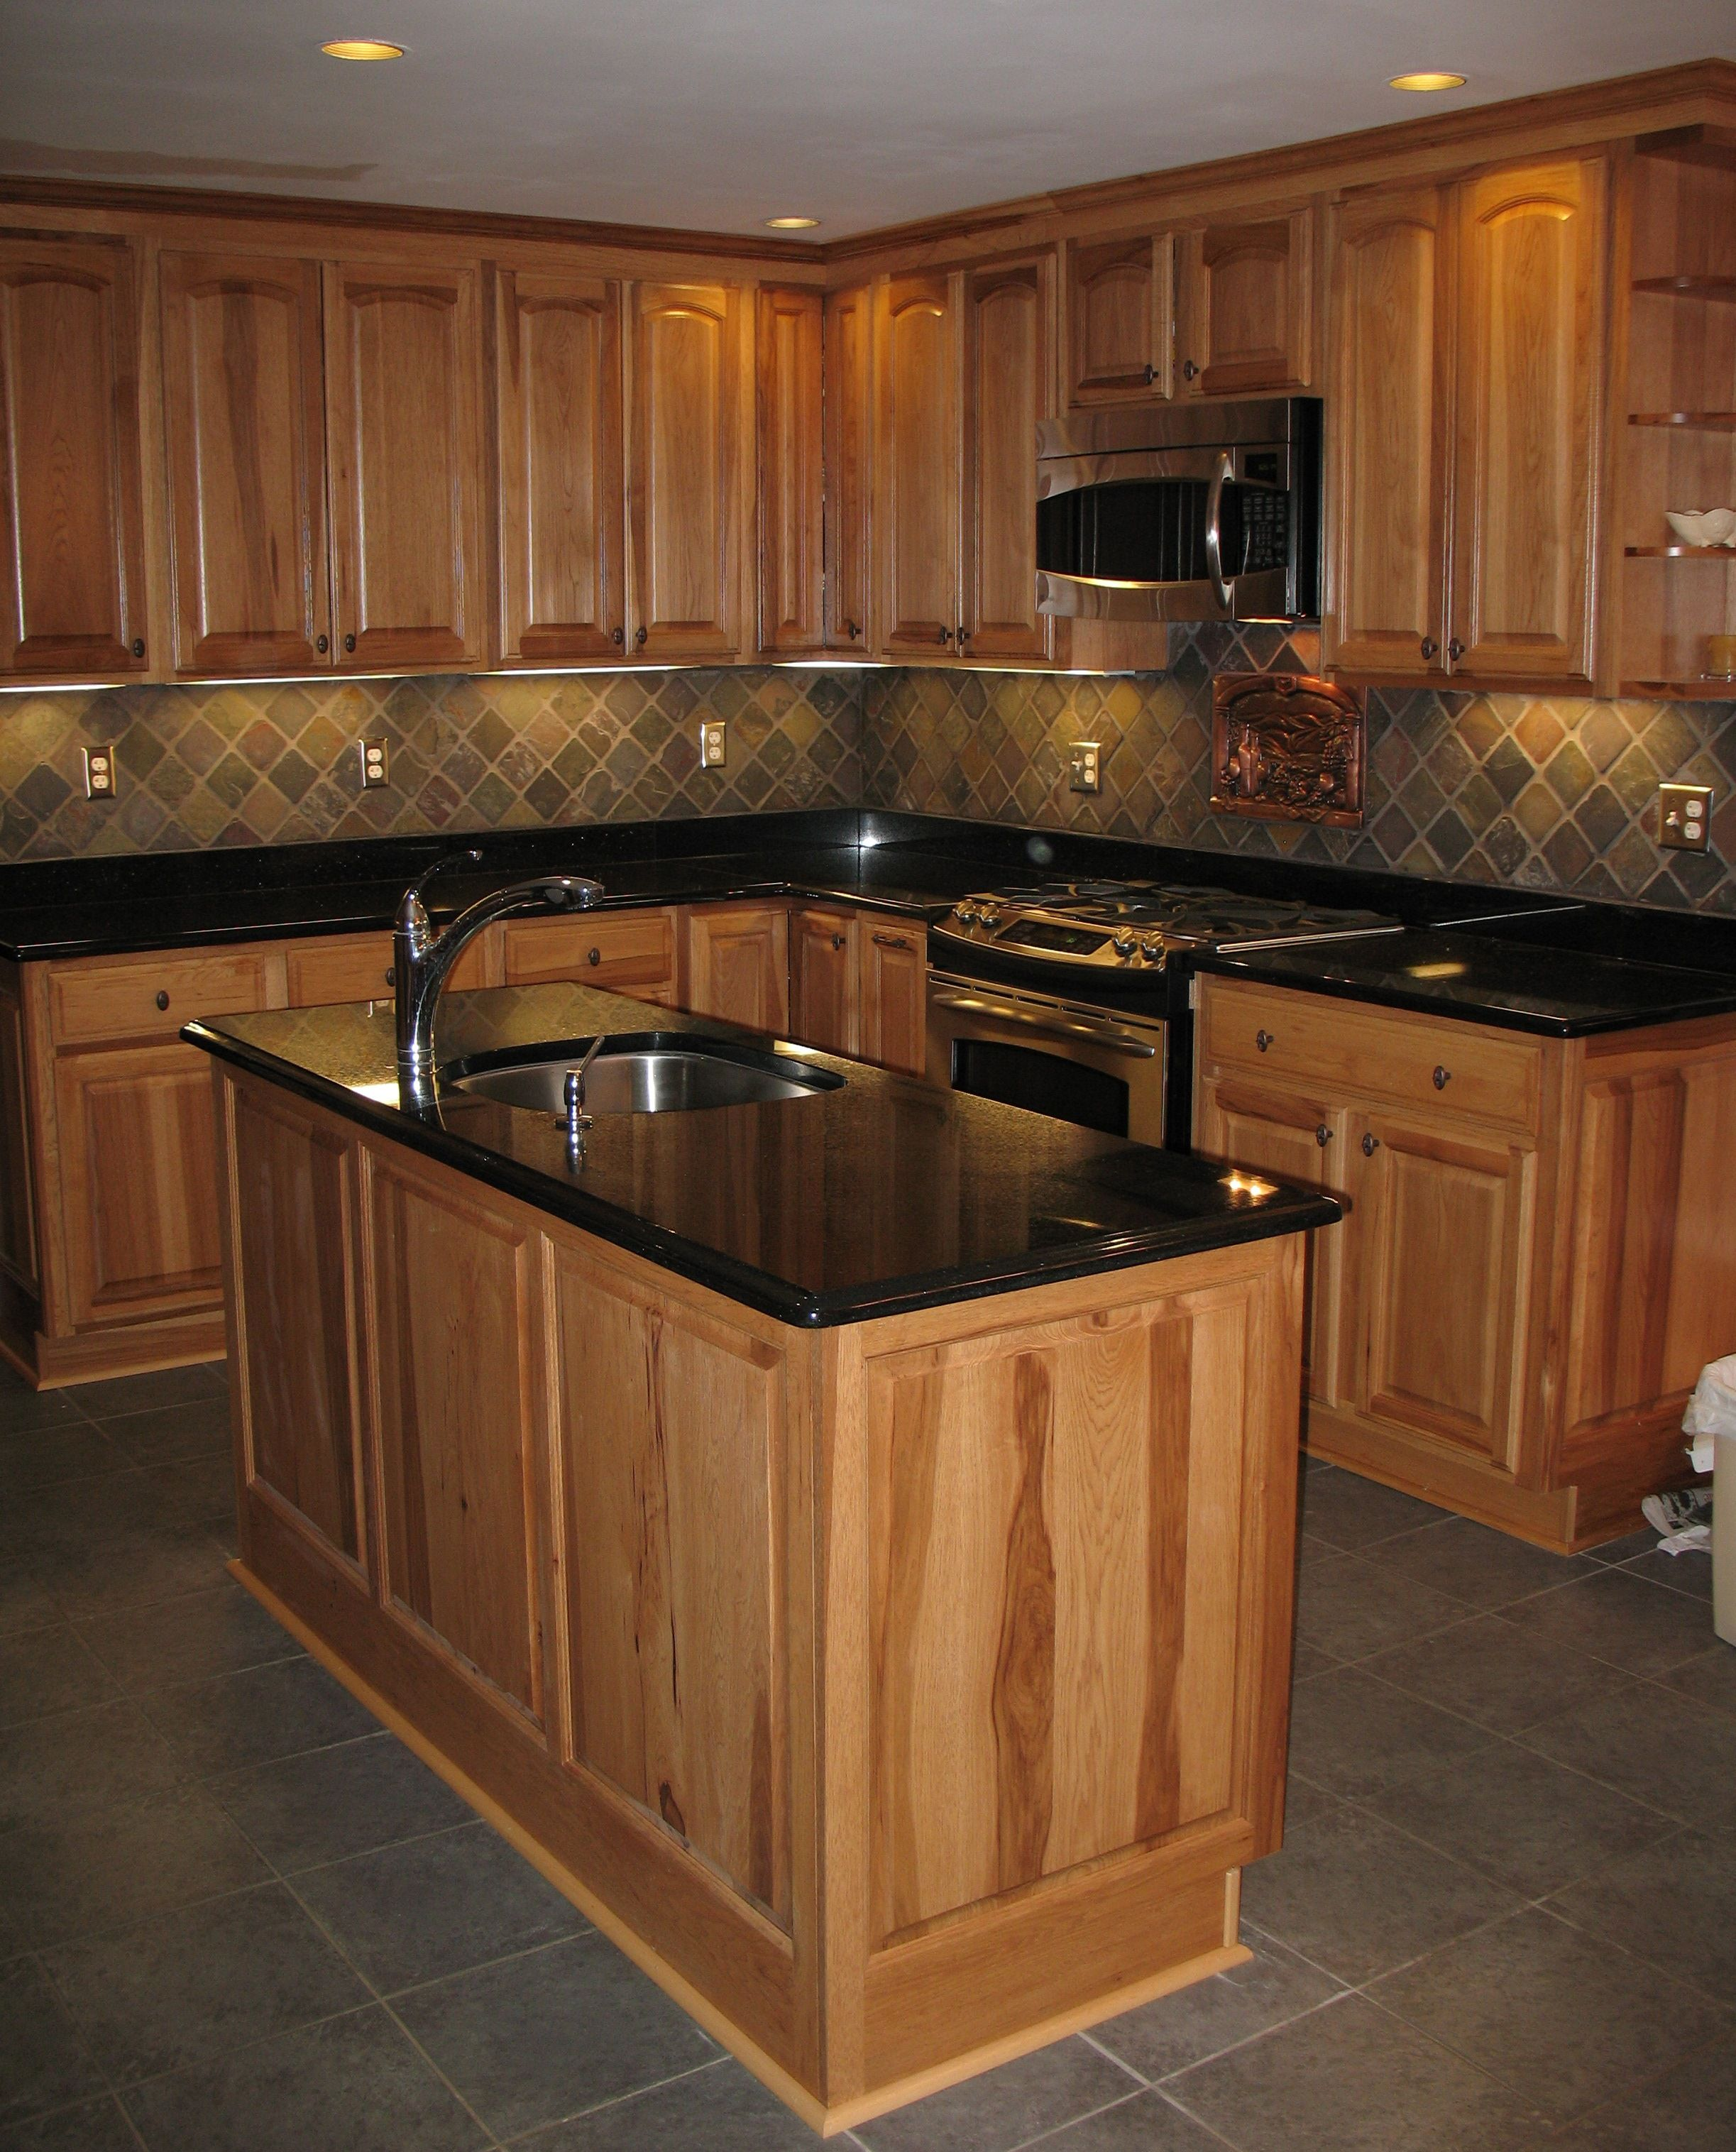 Black Slate Backsplash : My husband and i installed this slate backsplash